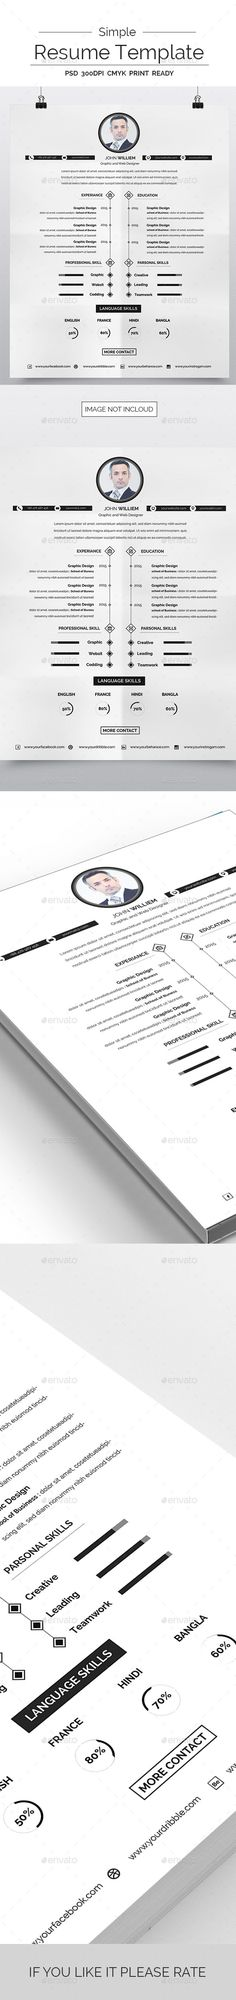 Resume - professional looking resume templates